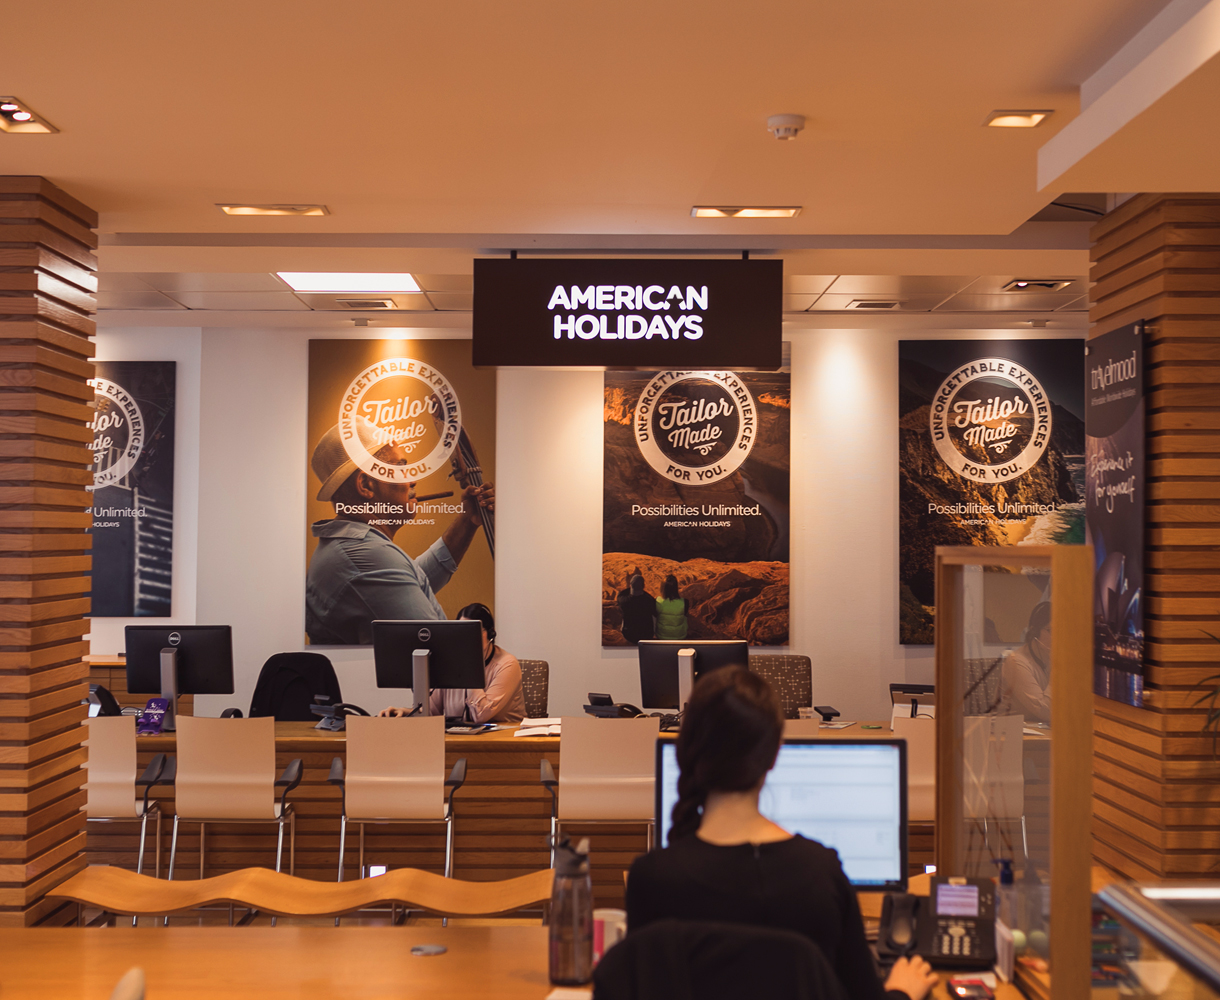 American Holidays store fit out refit wall graphics brand identity